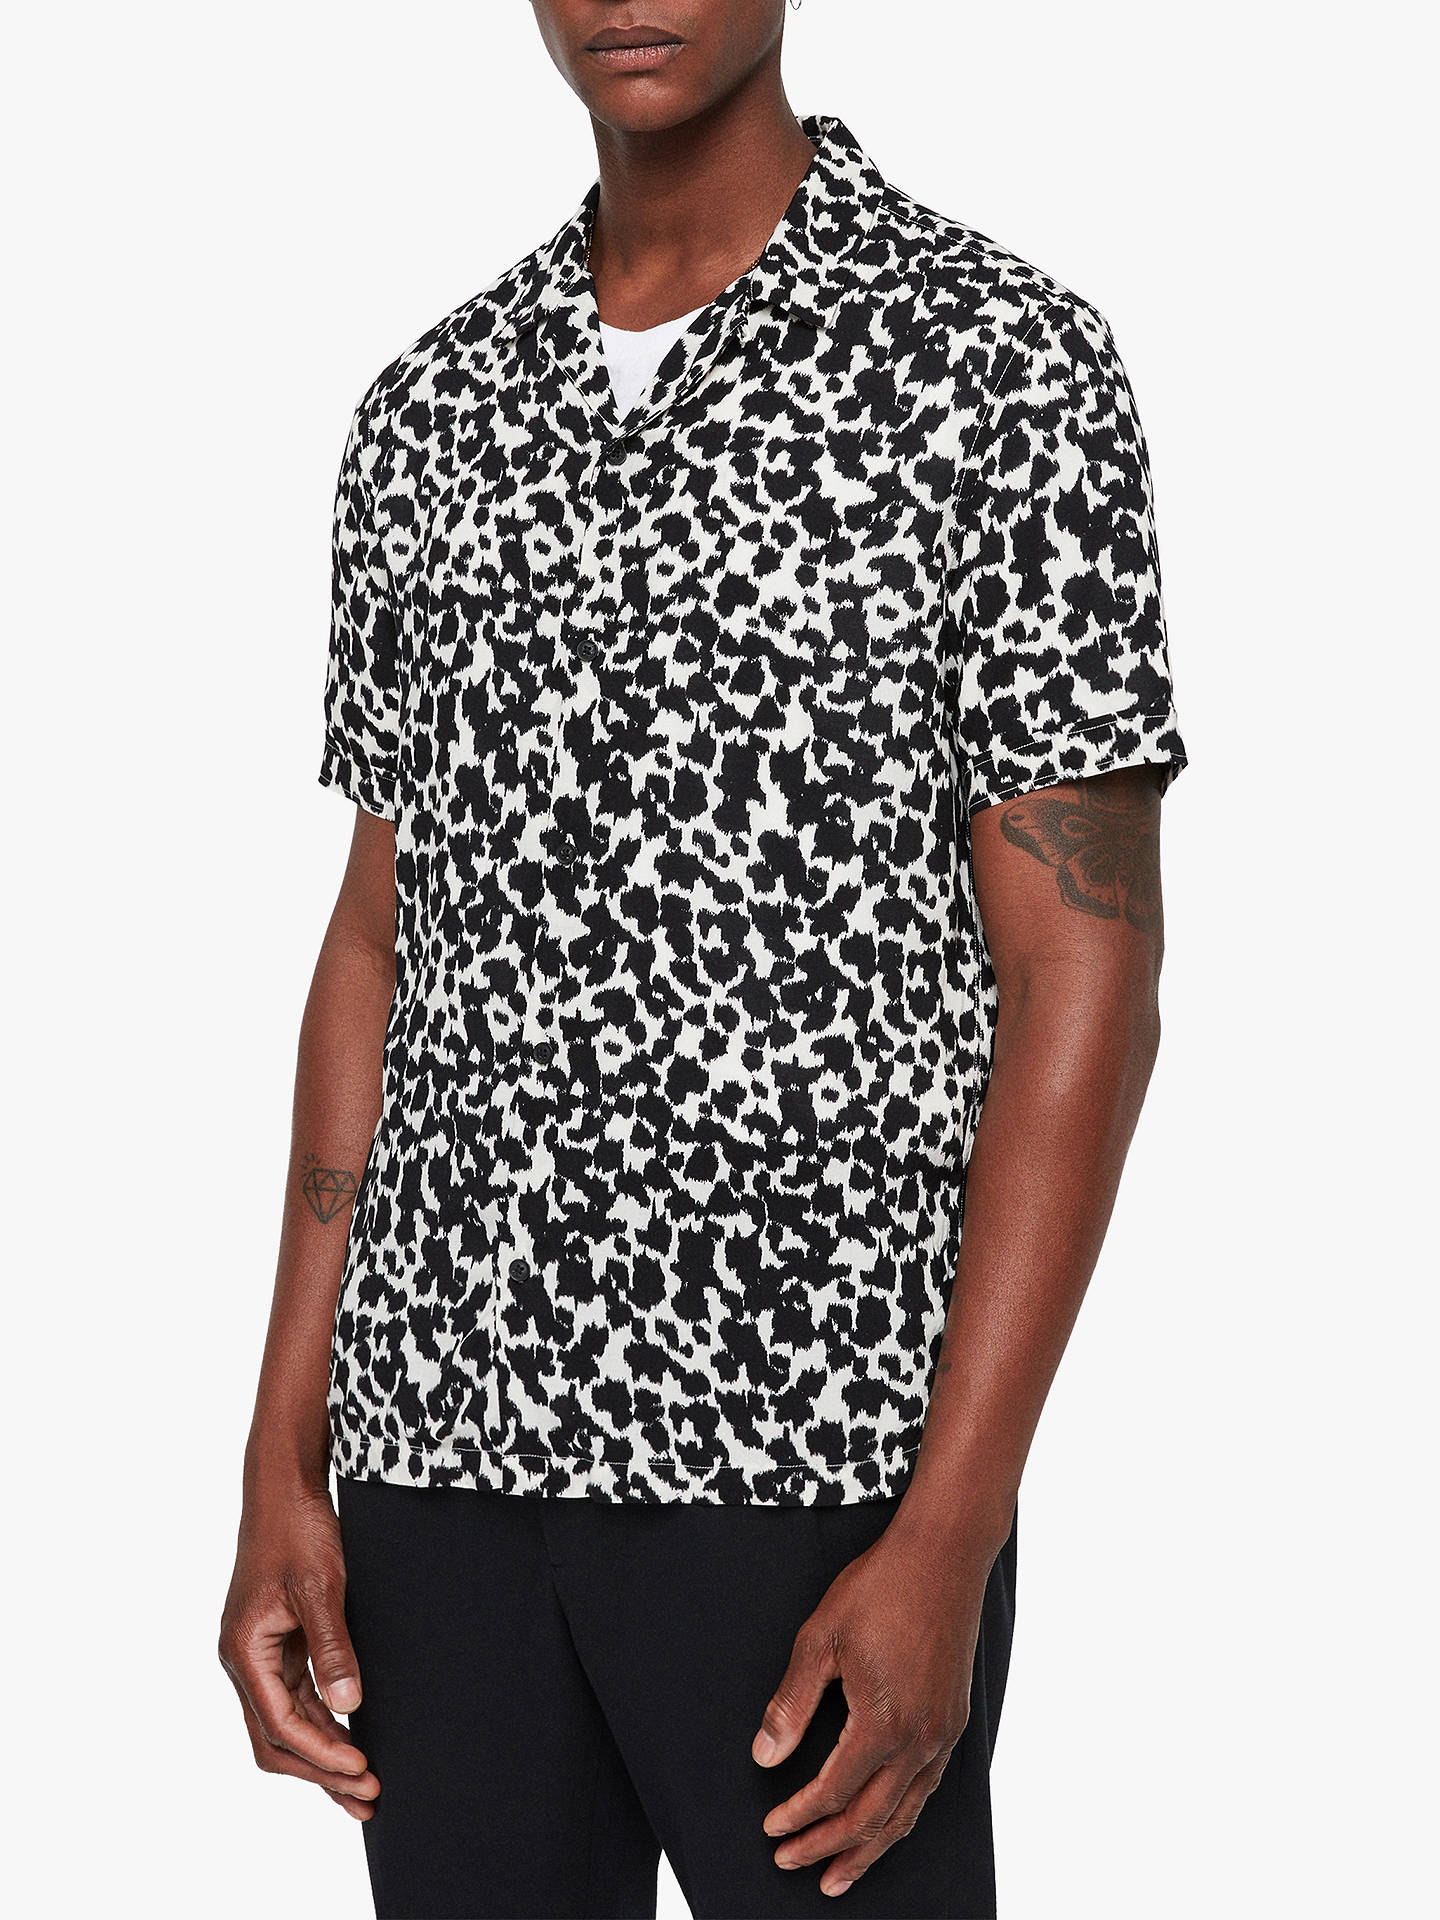 BuyAllSaints Sigfried Animal Print Shirt, Ecru White/Black, L Online at johnlewis.com